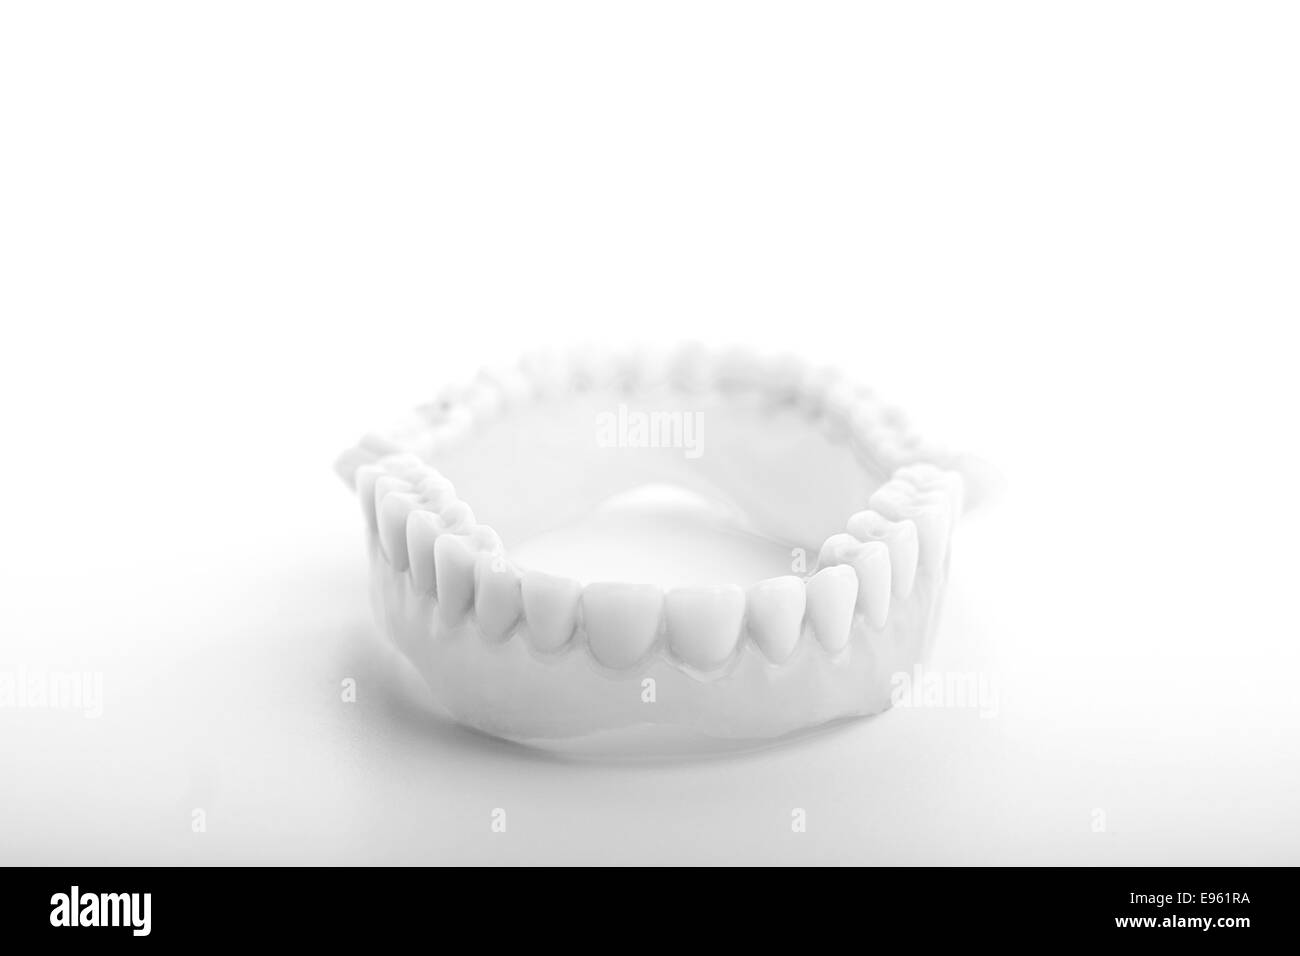 Molar Dent Stock Photos & Molar Dent Stock Images - Alamy